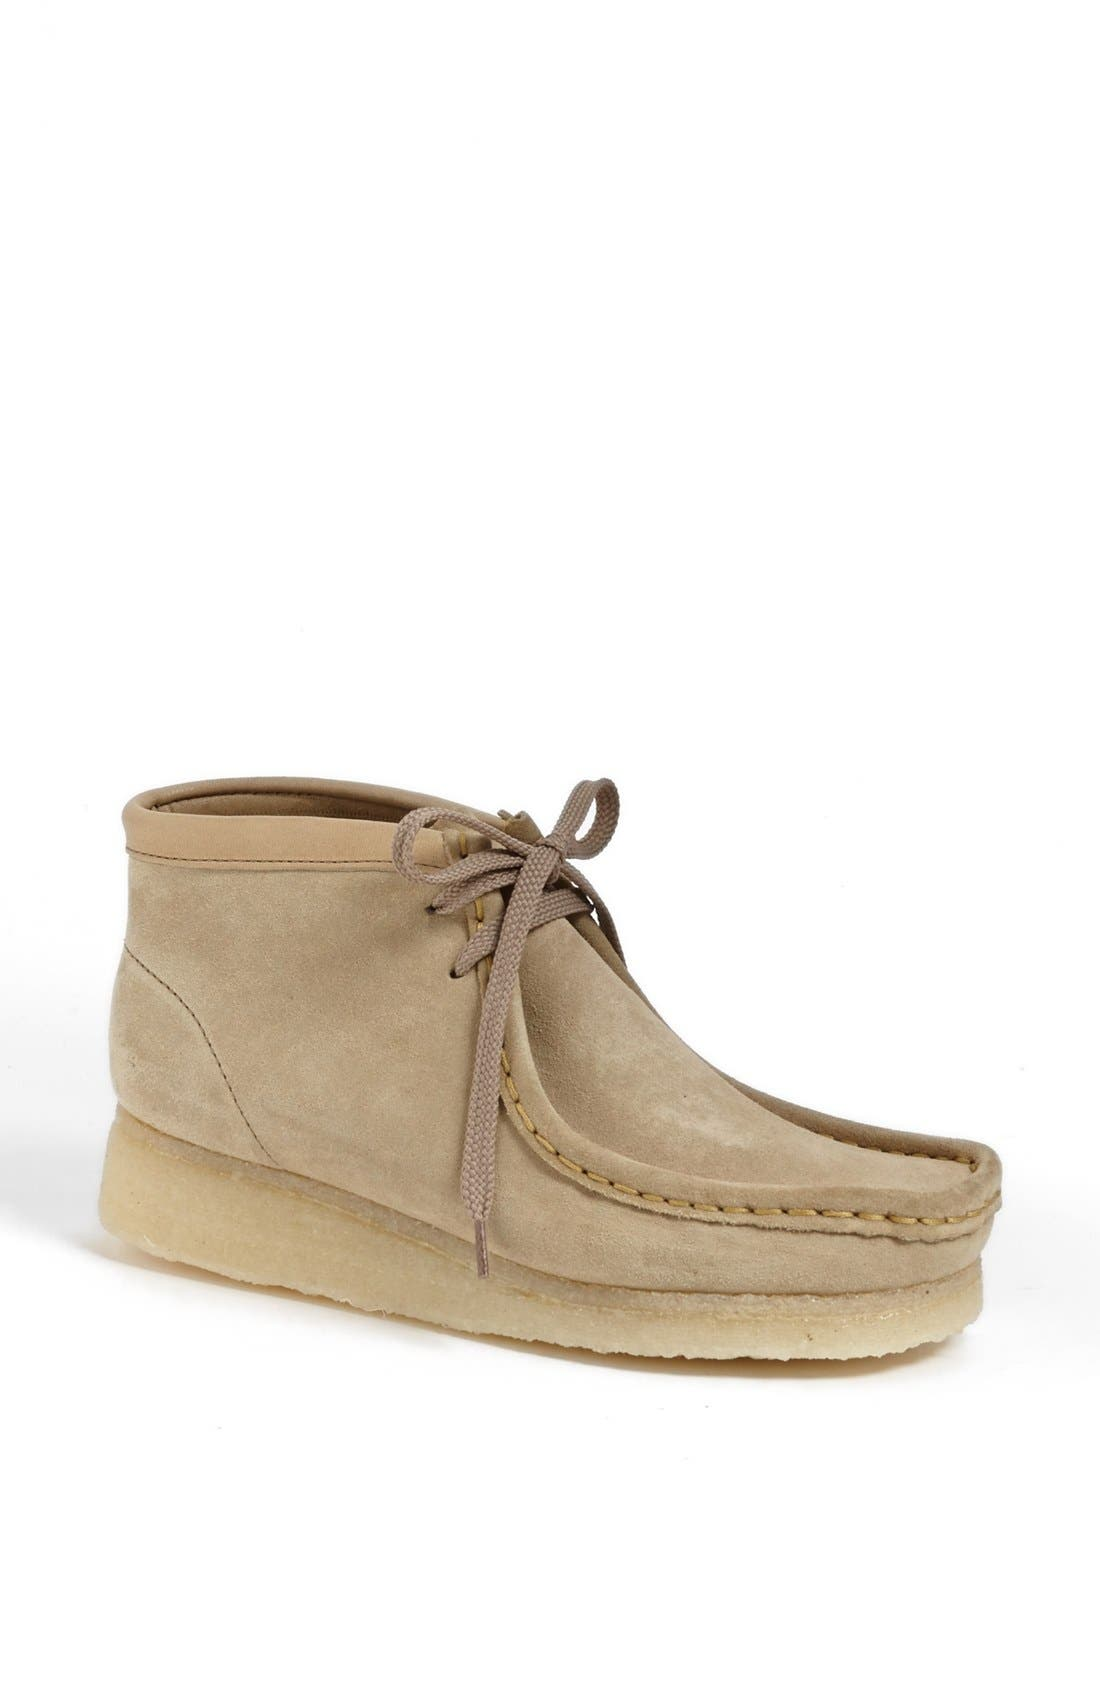 Main Image - Clarks® Originals 'Wallabee' Chukka Boot (Women)